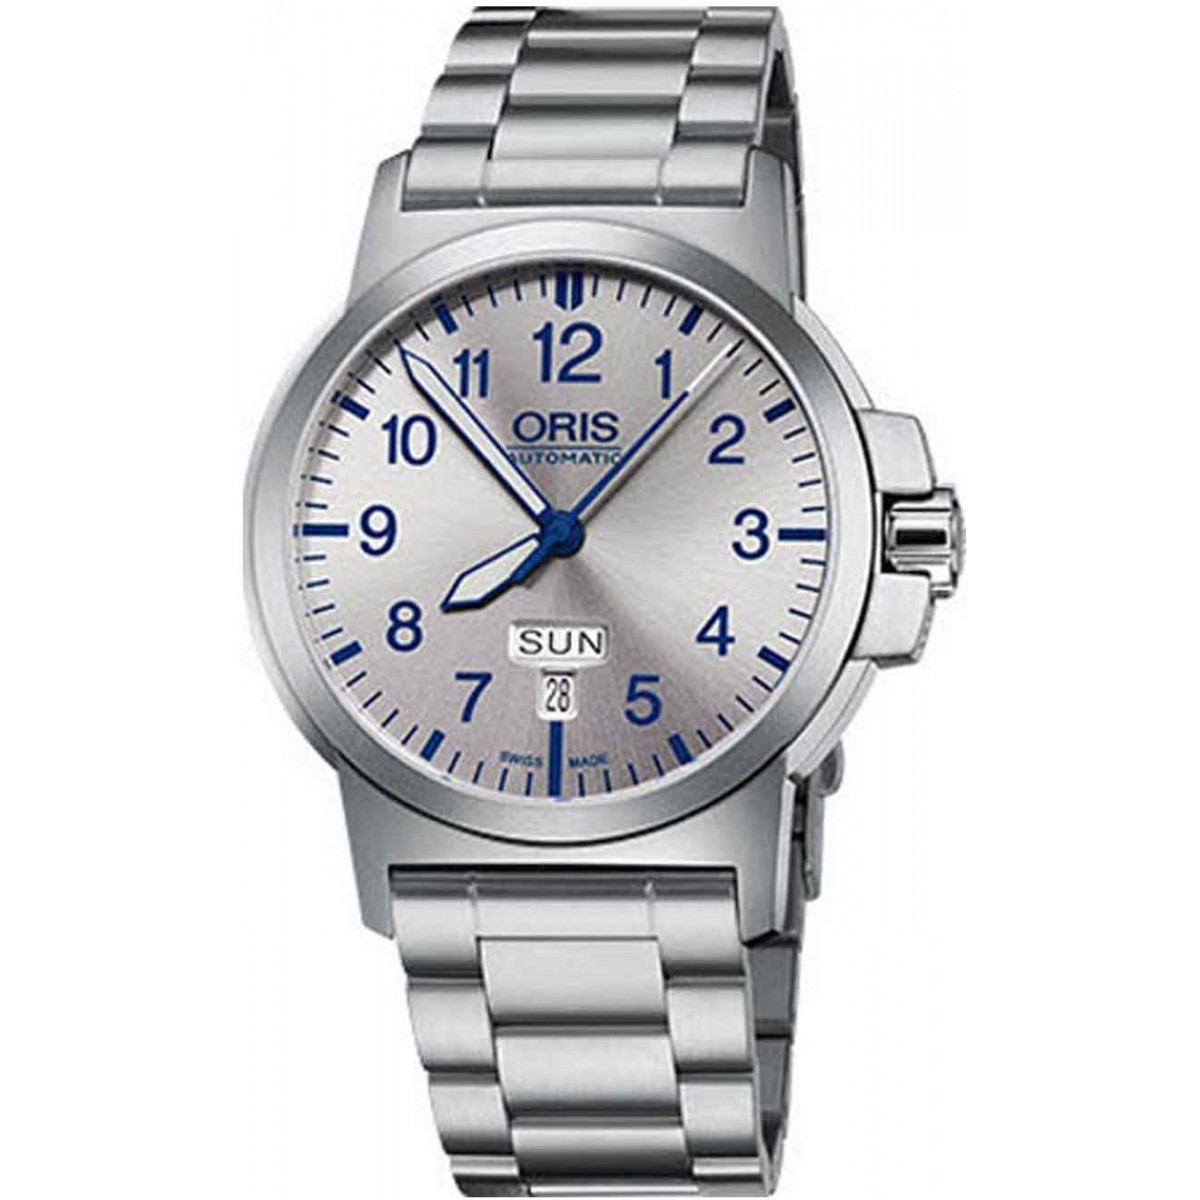 ORIS BC3 ADVANCED, DAY DATE - 100 M ∅42 mm, Automatico, Esfera plata, Acero